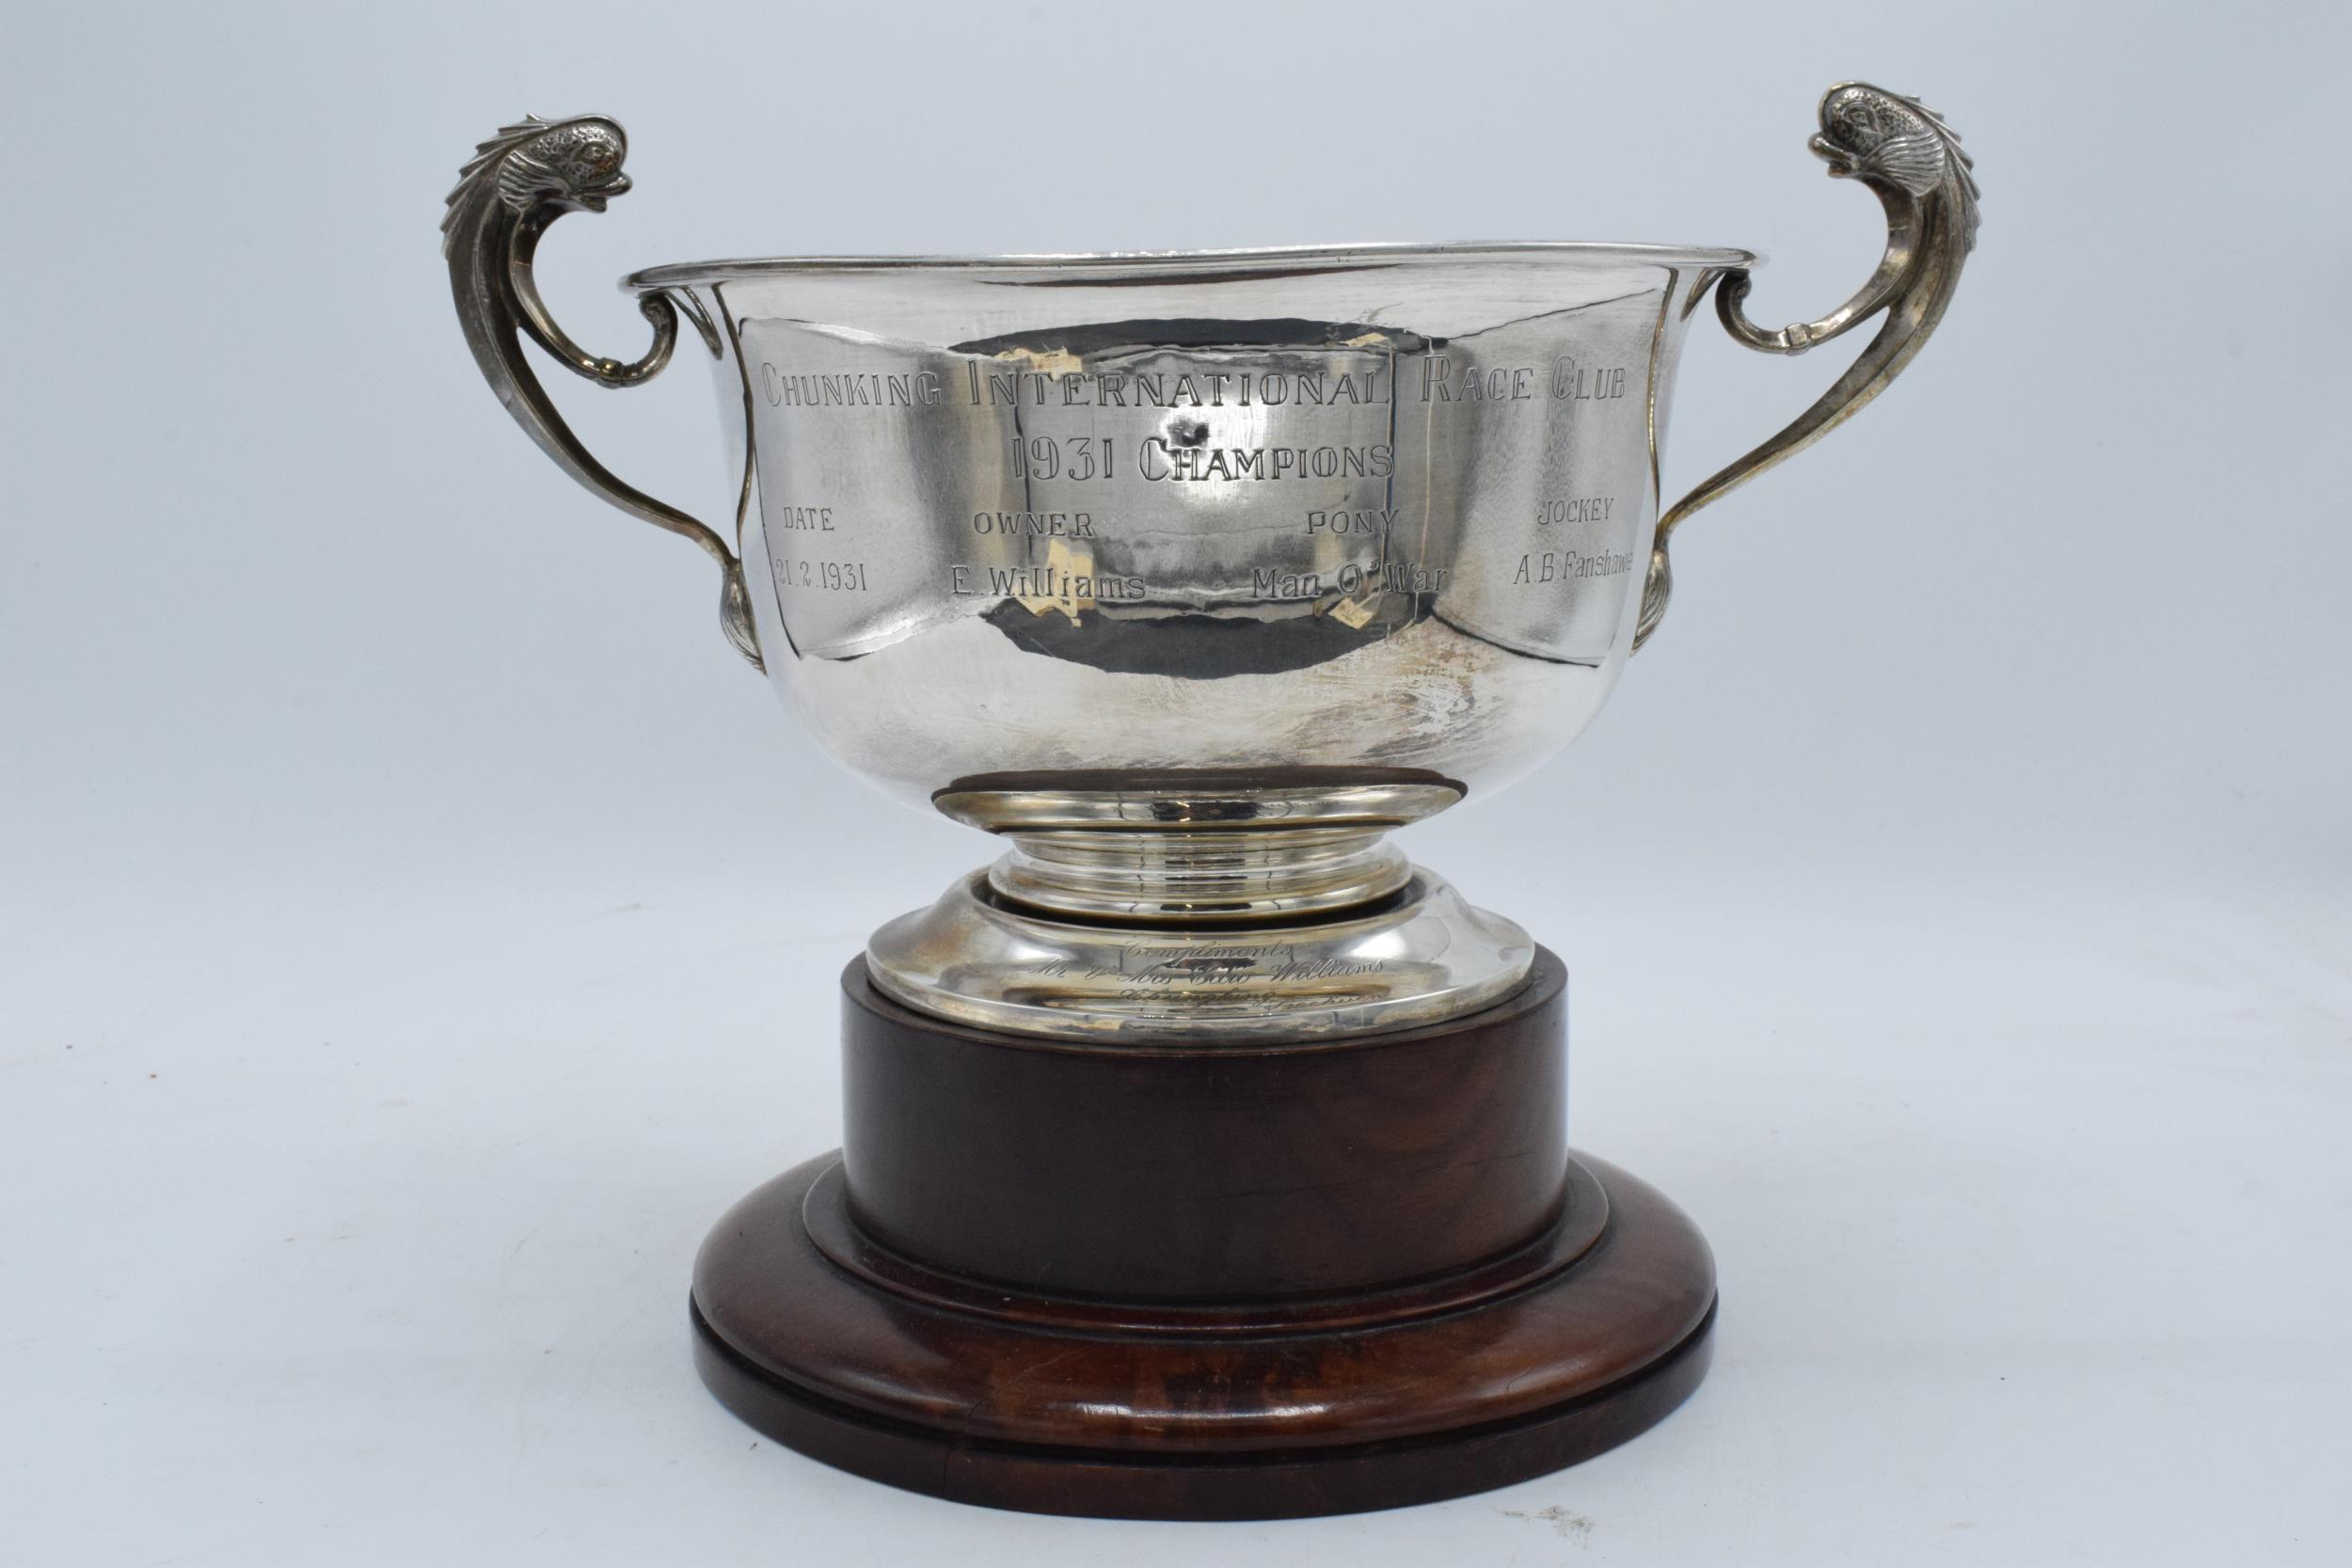 A large silver pedestal bowl raised on a turned wooden plinth with ornate handles. Circa 700